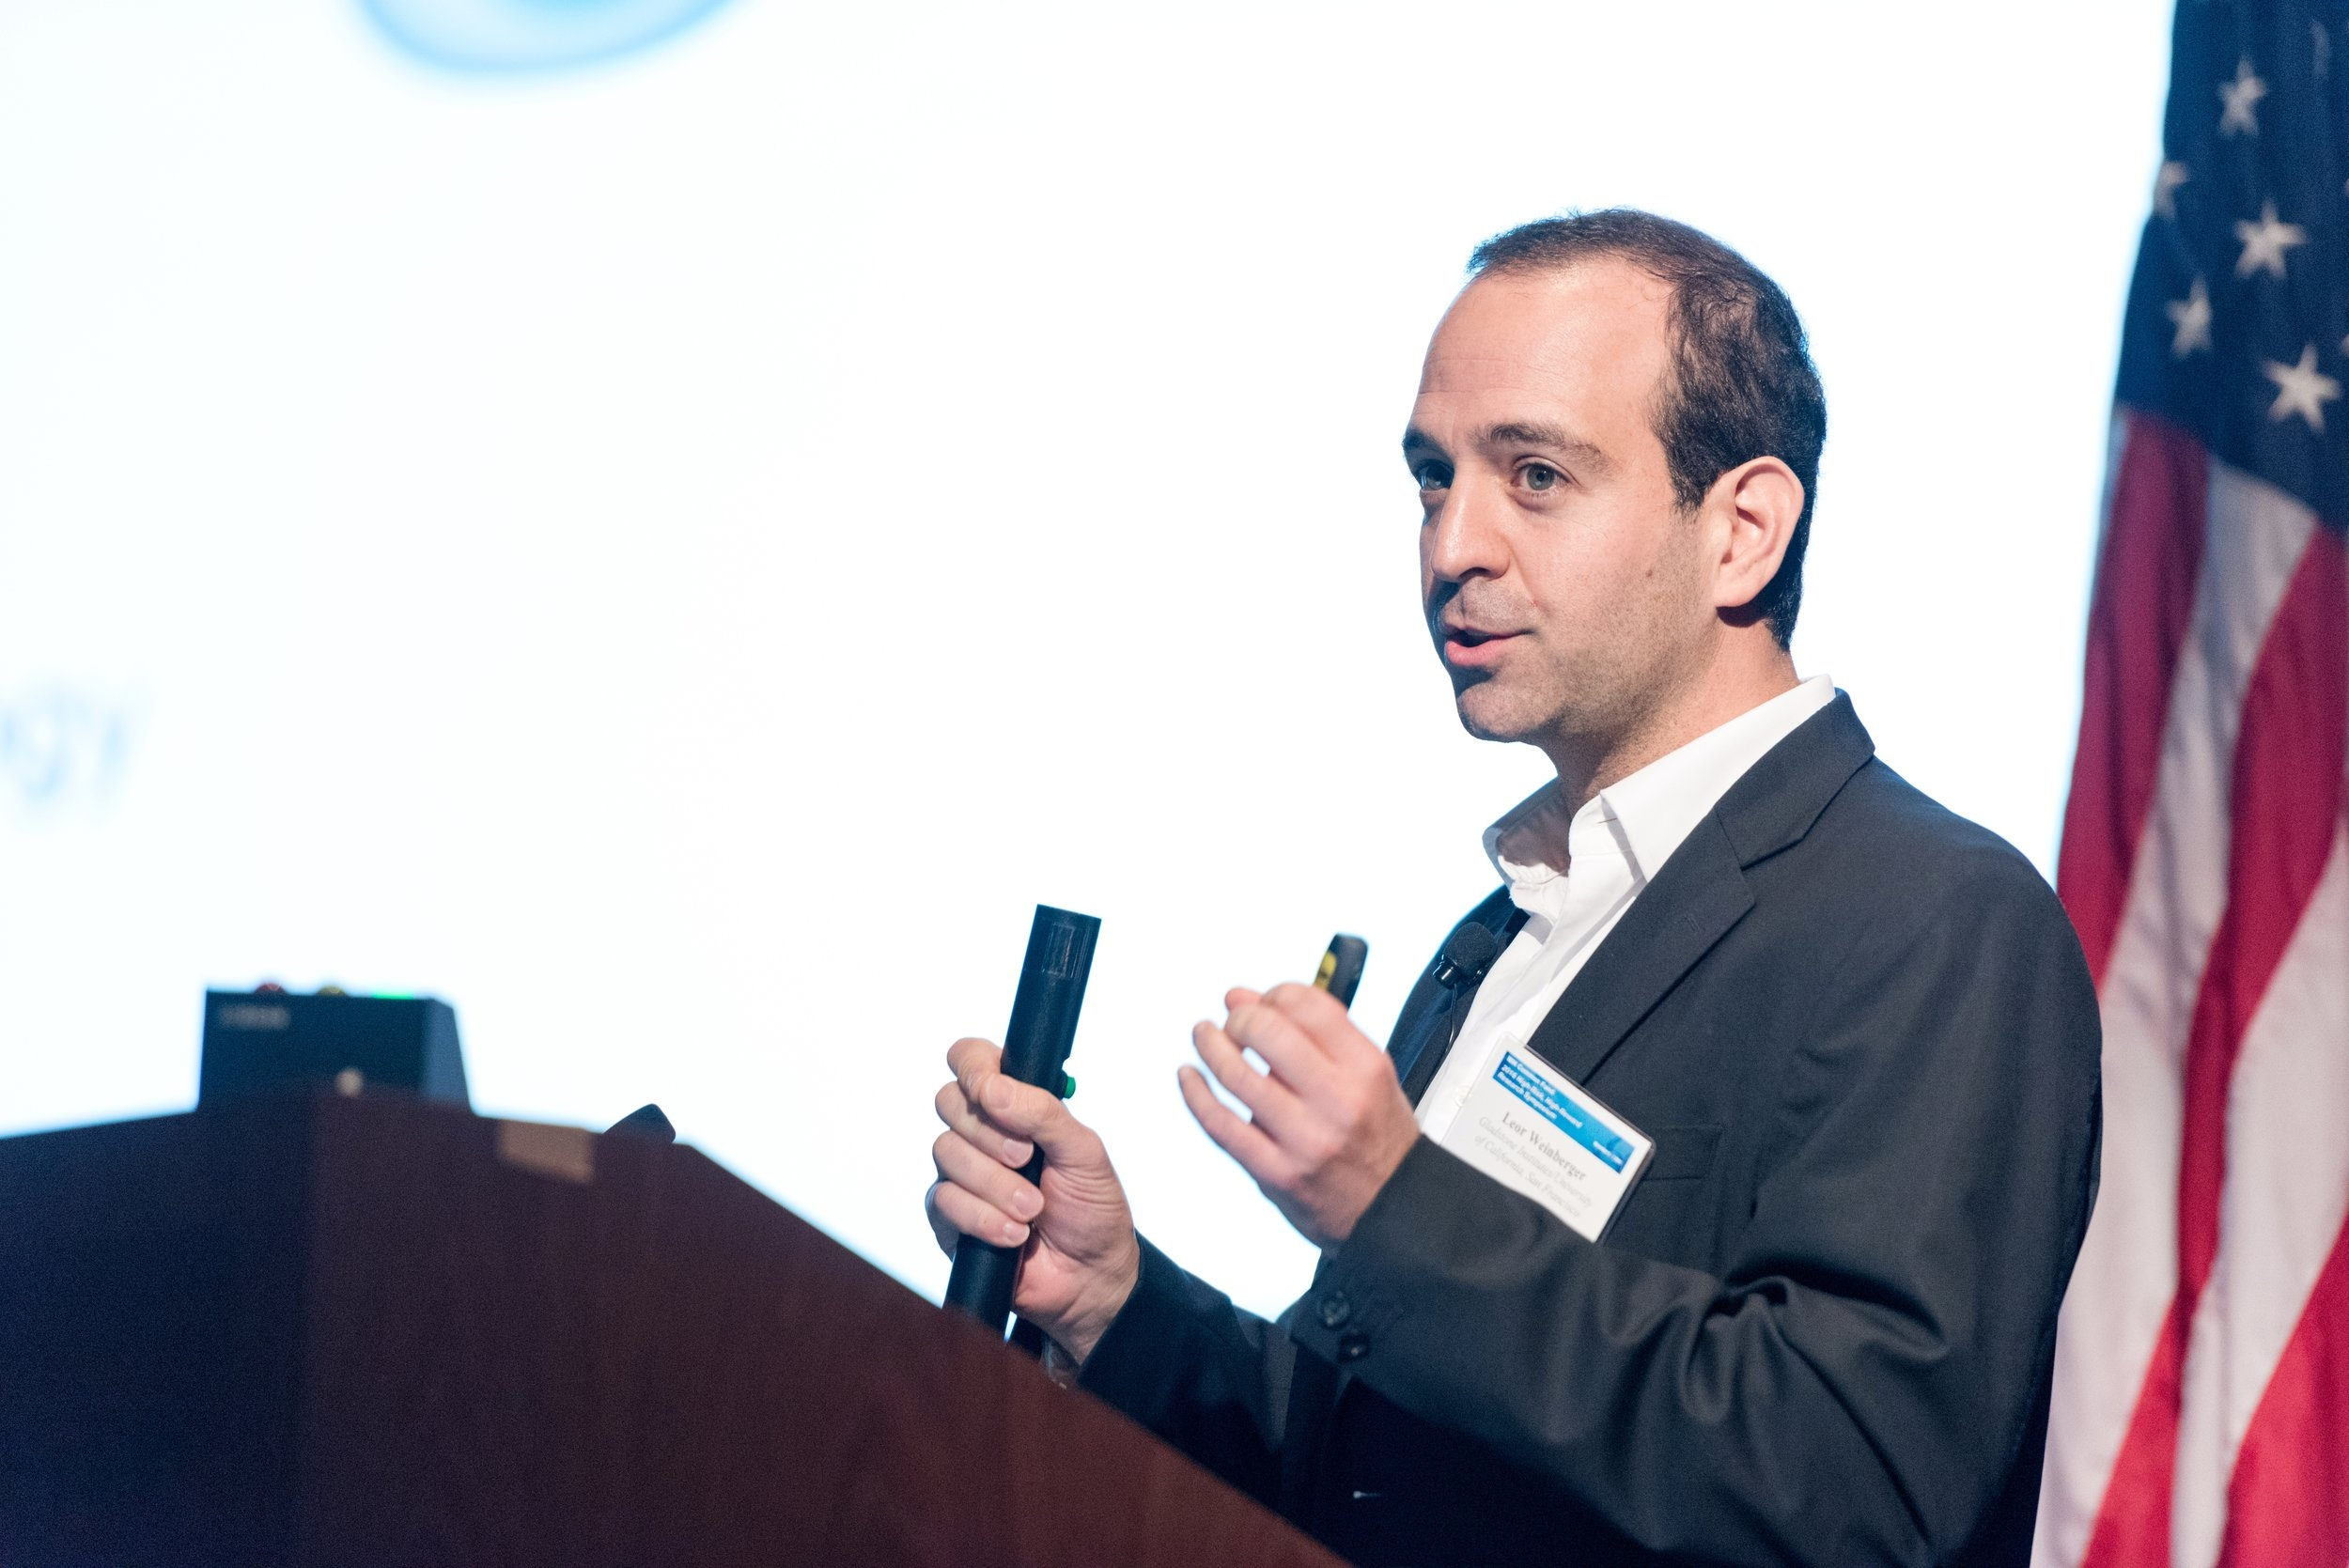 Leor giving a presentation at the 2016 NIH High-Risk, High-Reward Research Symposium.